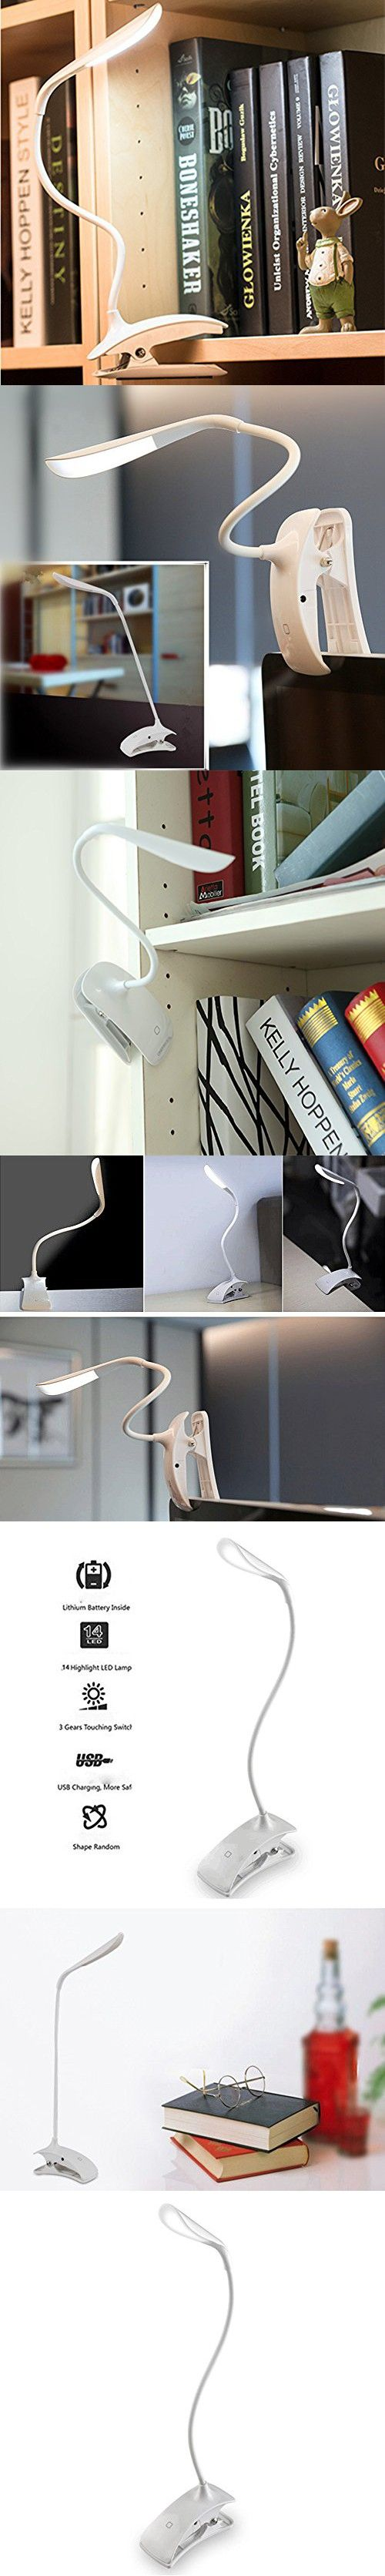 Ndoobiy Rechargeable LED Desk Lamp Table Clip Reading Light Touch Control Clamp-on Study Lamp Gooseneck with Usb Charging Port for Students Kids Bedrooms Living Room 3 Brightness Levels 3W